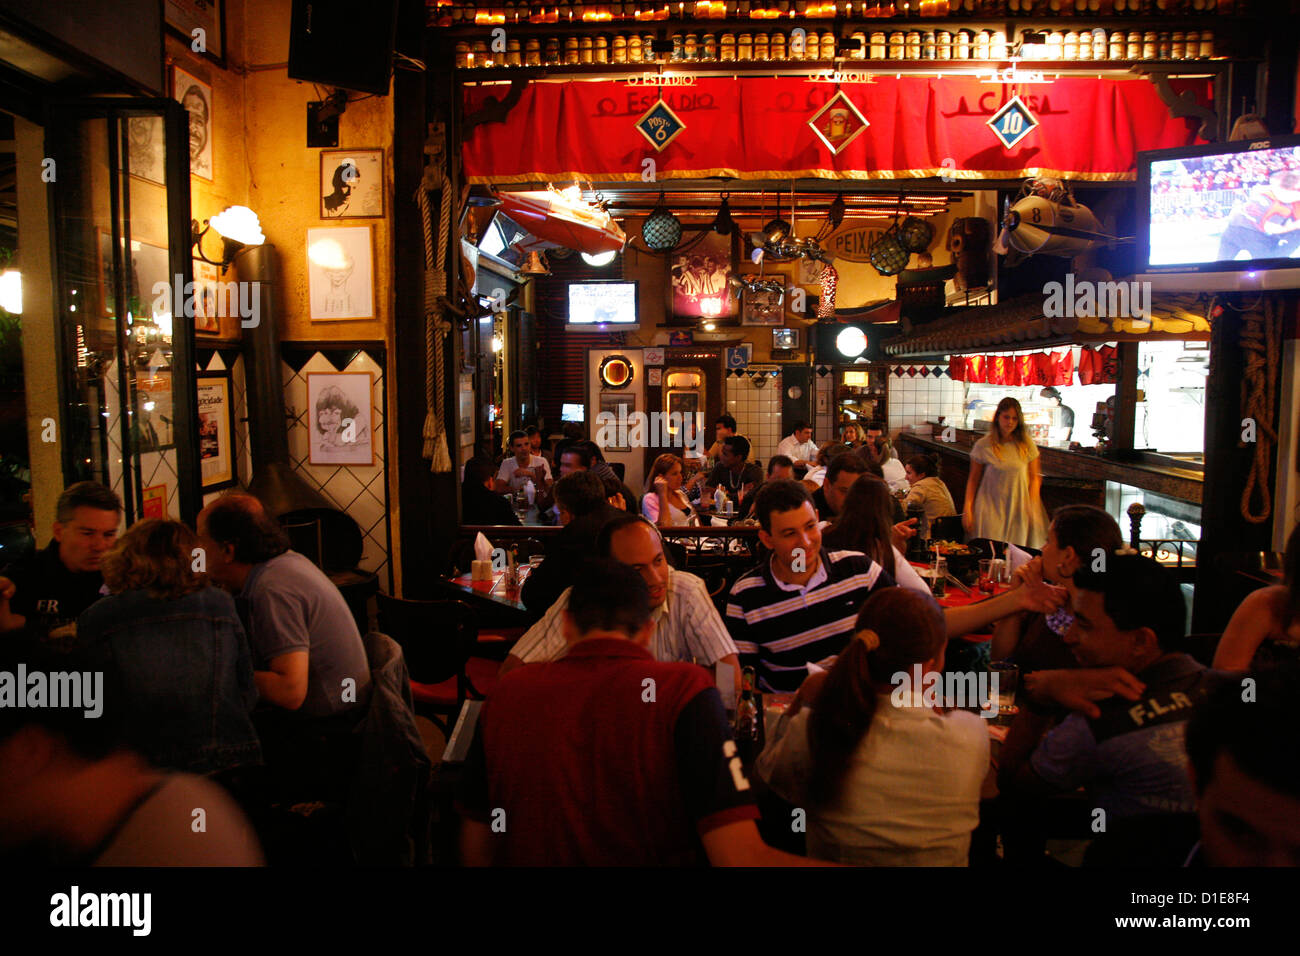 People in a restaurant in the Vila Madalena area known for its bars, restaurants and nighlife, Sao Paulo, Brazil, - Stock Image